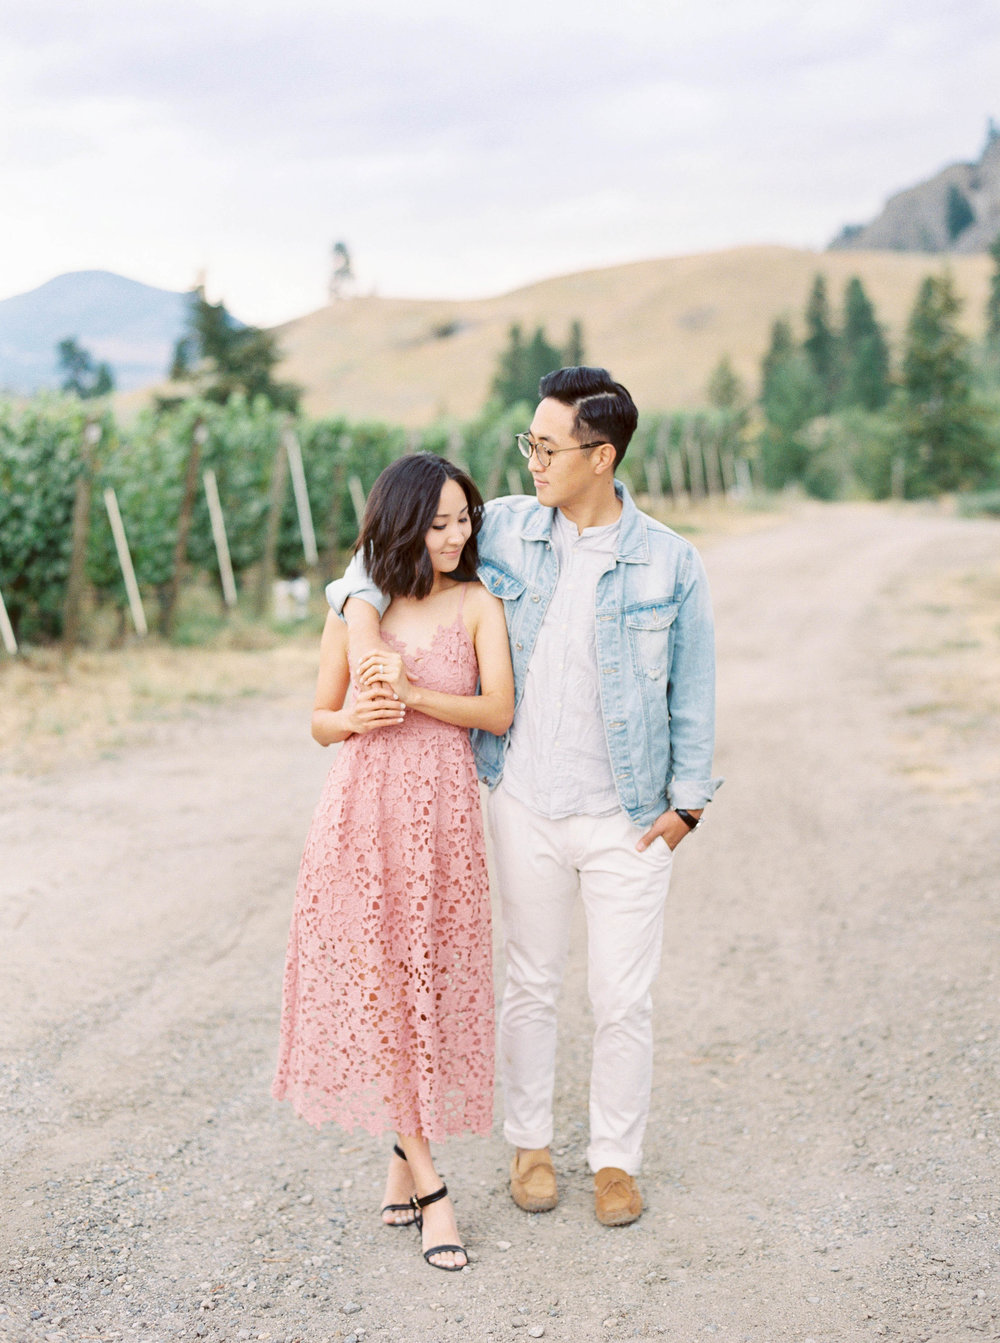 painted-rock-okanagan-wedding-photographer-soft-airy-bc-alberta-janice-jace-1.jpg